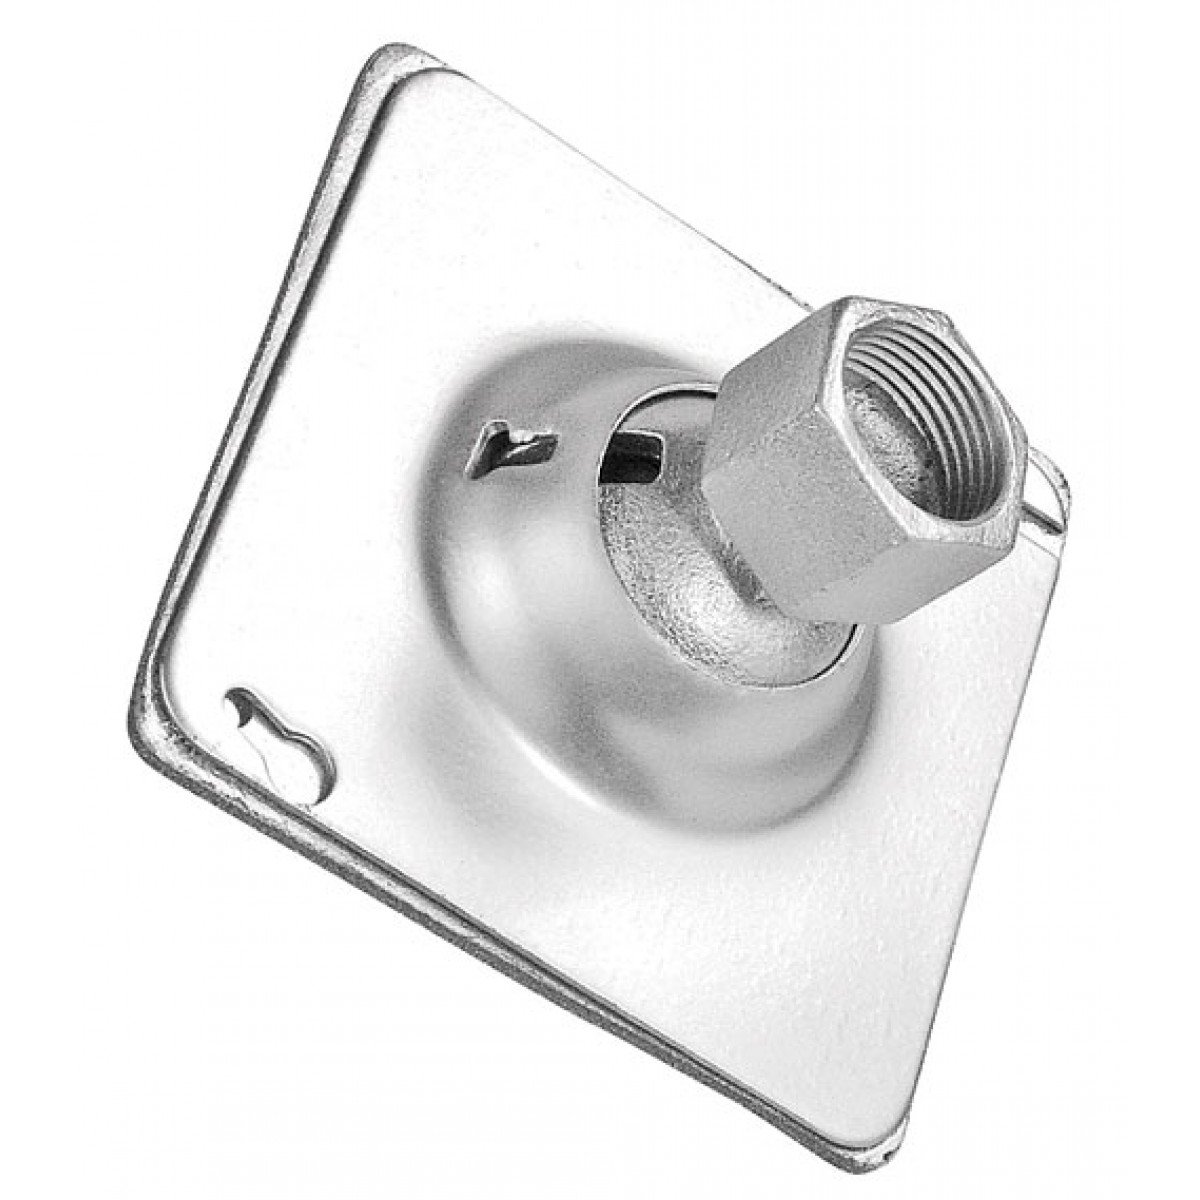 2 Pcs, Zinc Plated Steel 4 In. Square Weatherproof Swivel Fixture Hanger Cover w/Gasketed Cover for 1/2 In. Or 3/4 In. Pipe